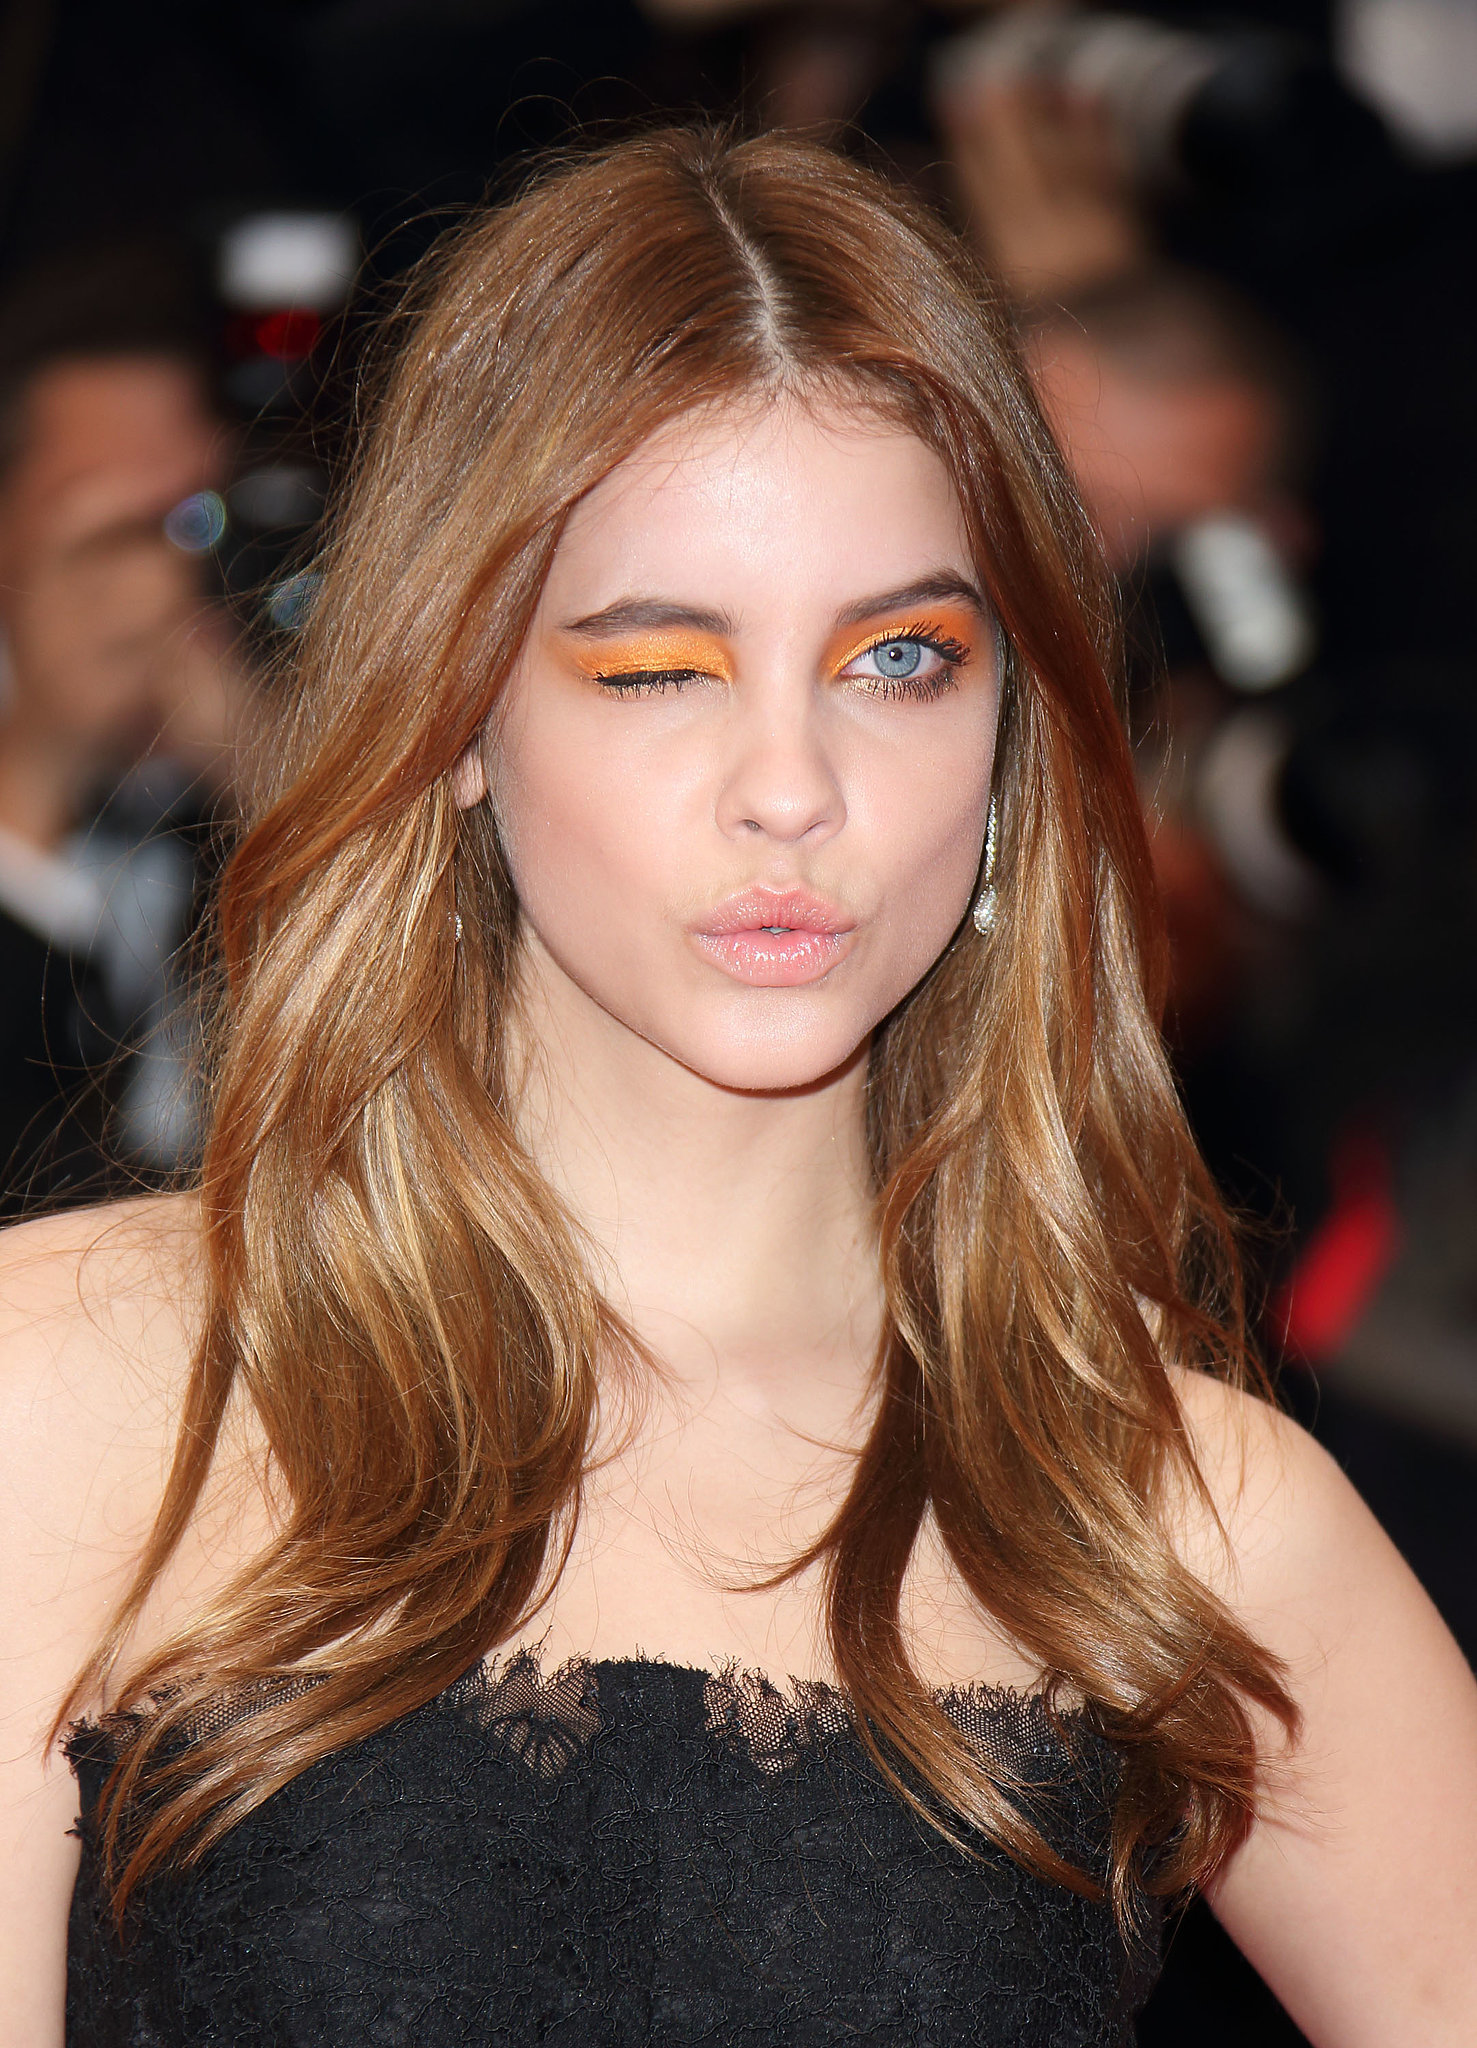 Model-Barbara-Palvin-wore-bright-orange-eye-shadow-from-lash-line